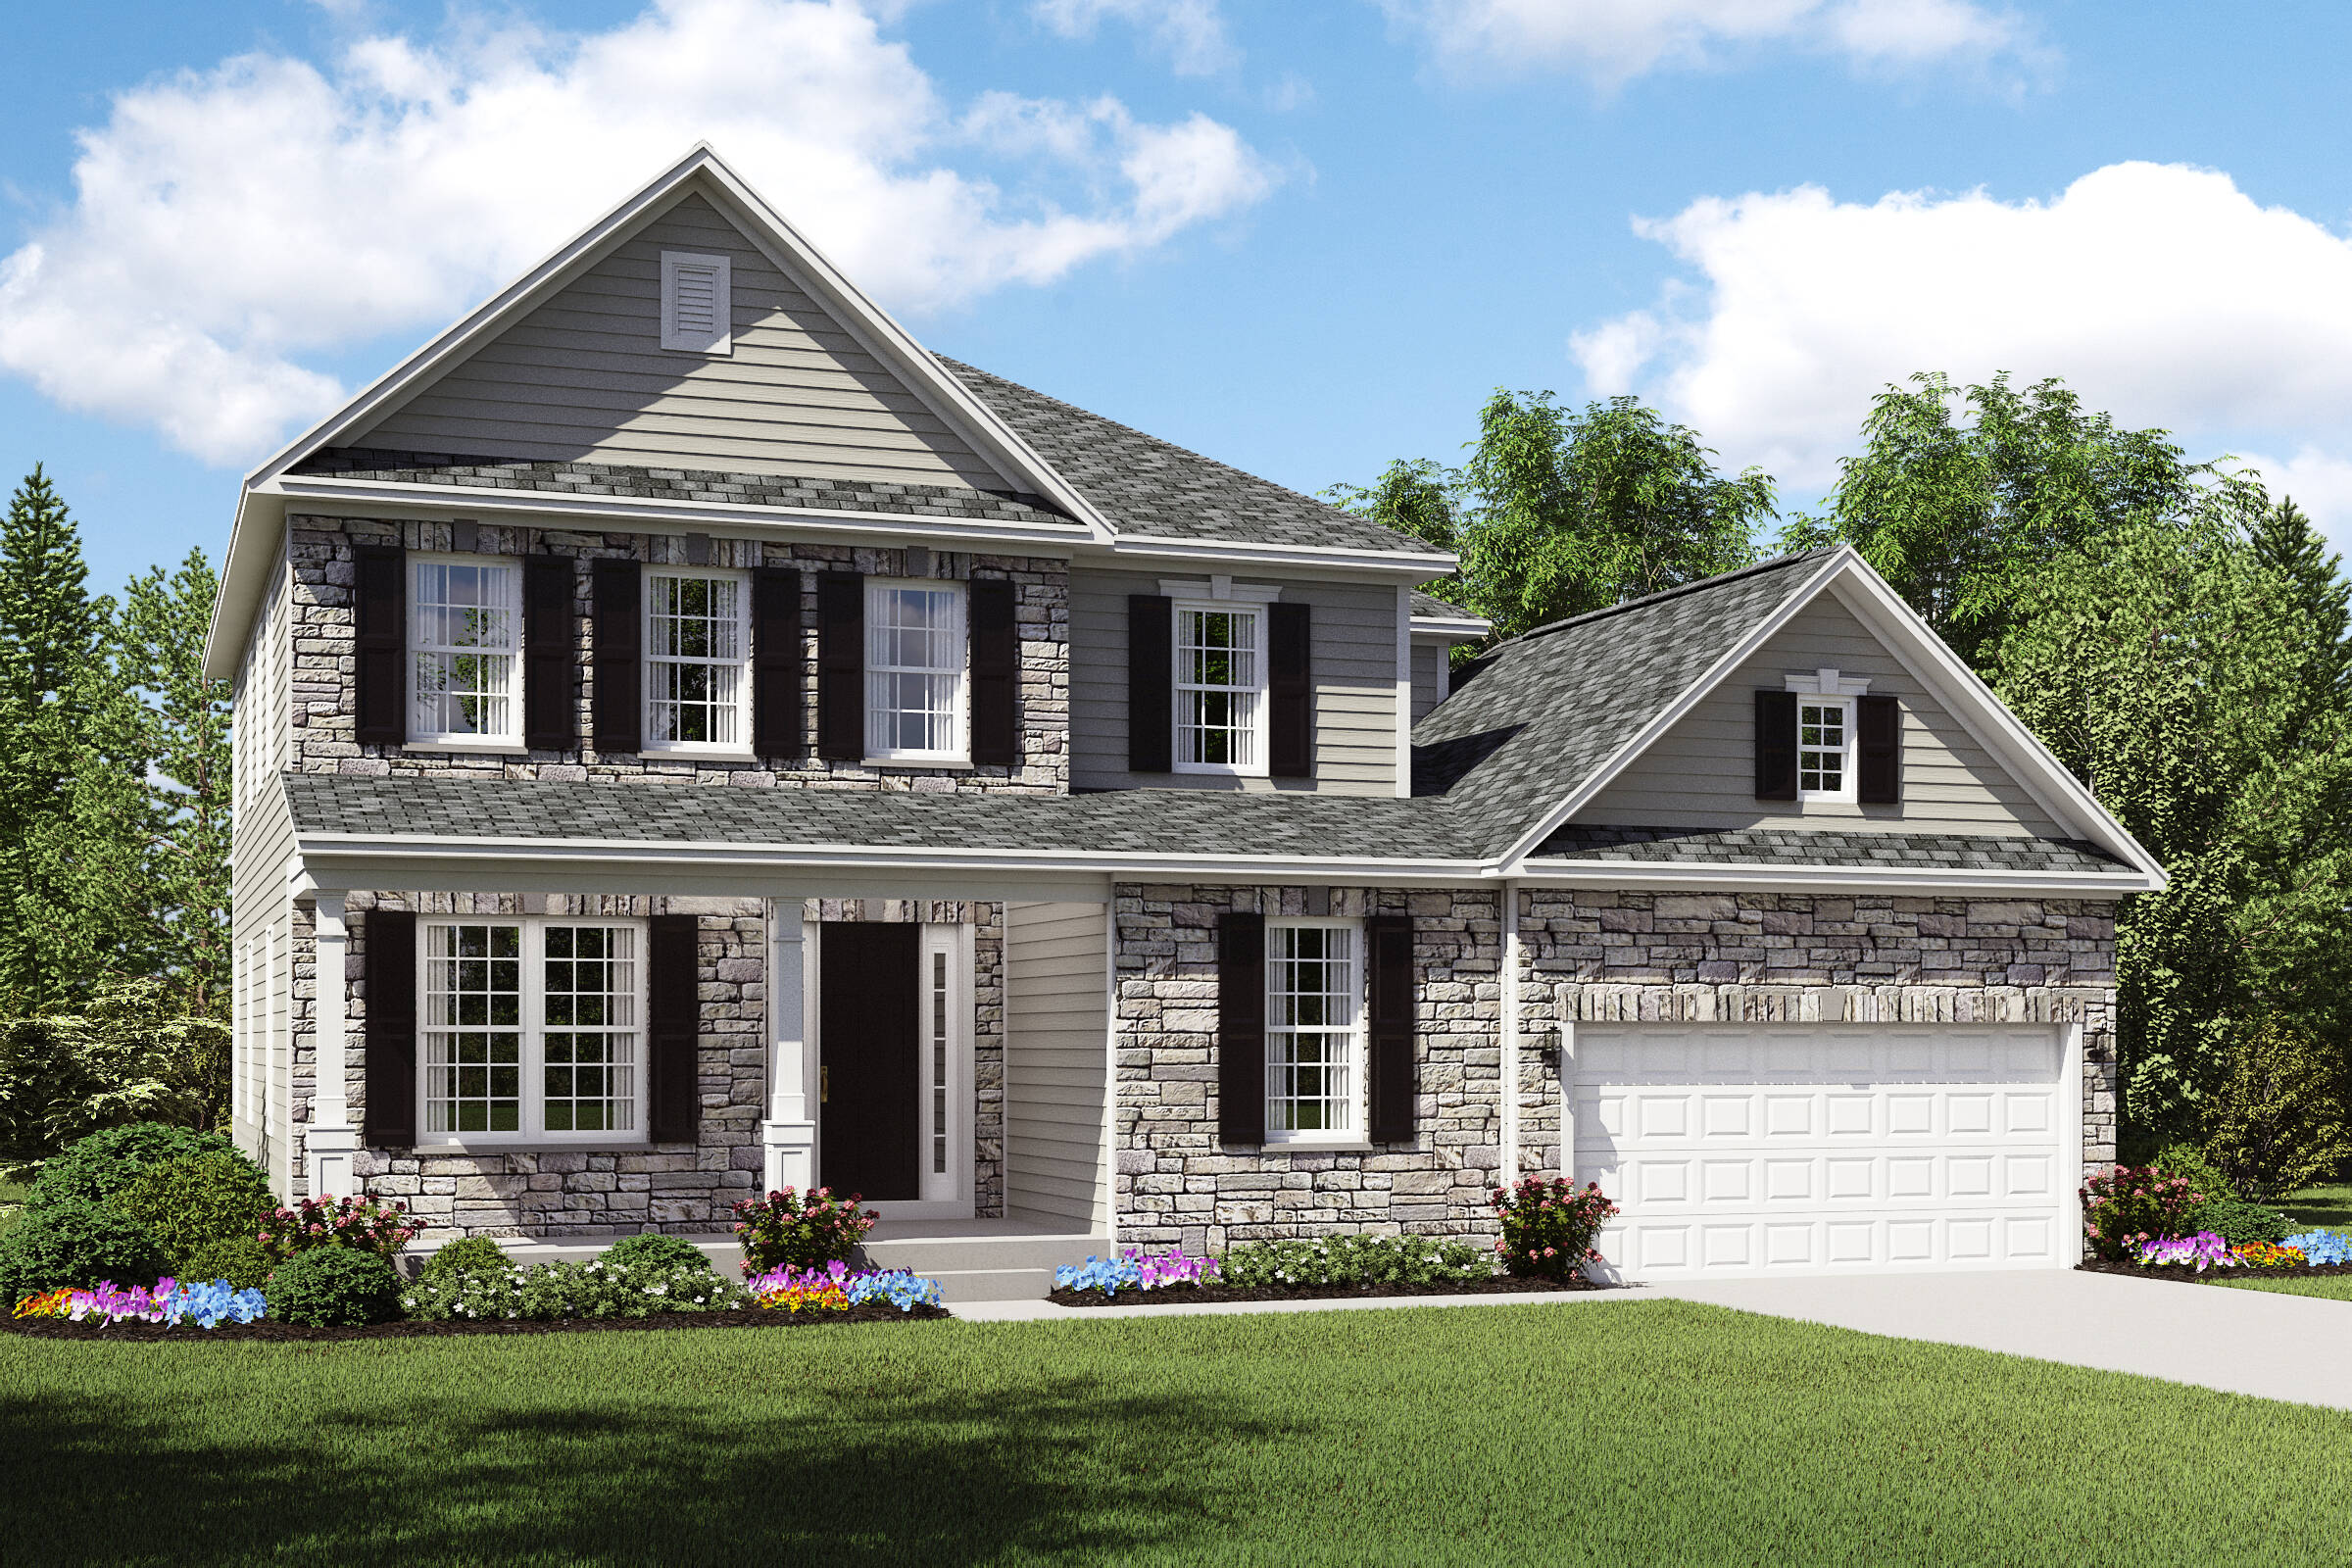 hopewell ht homes for sale cleveland ohio